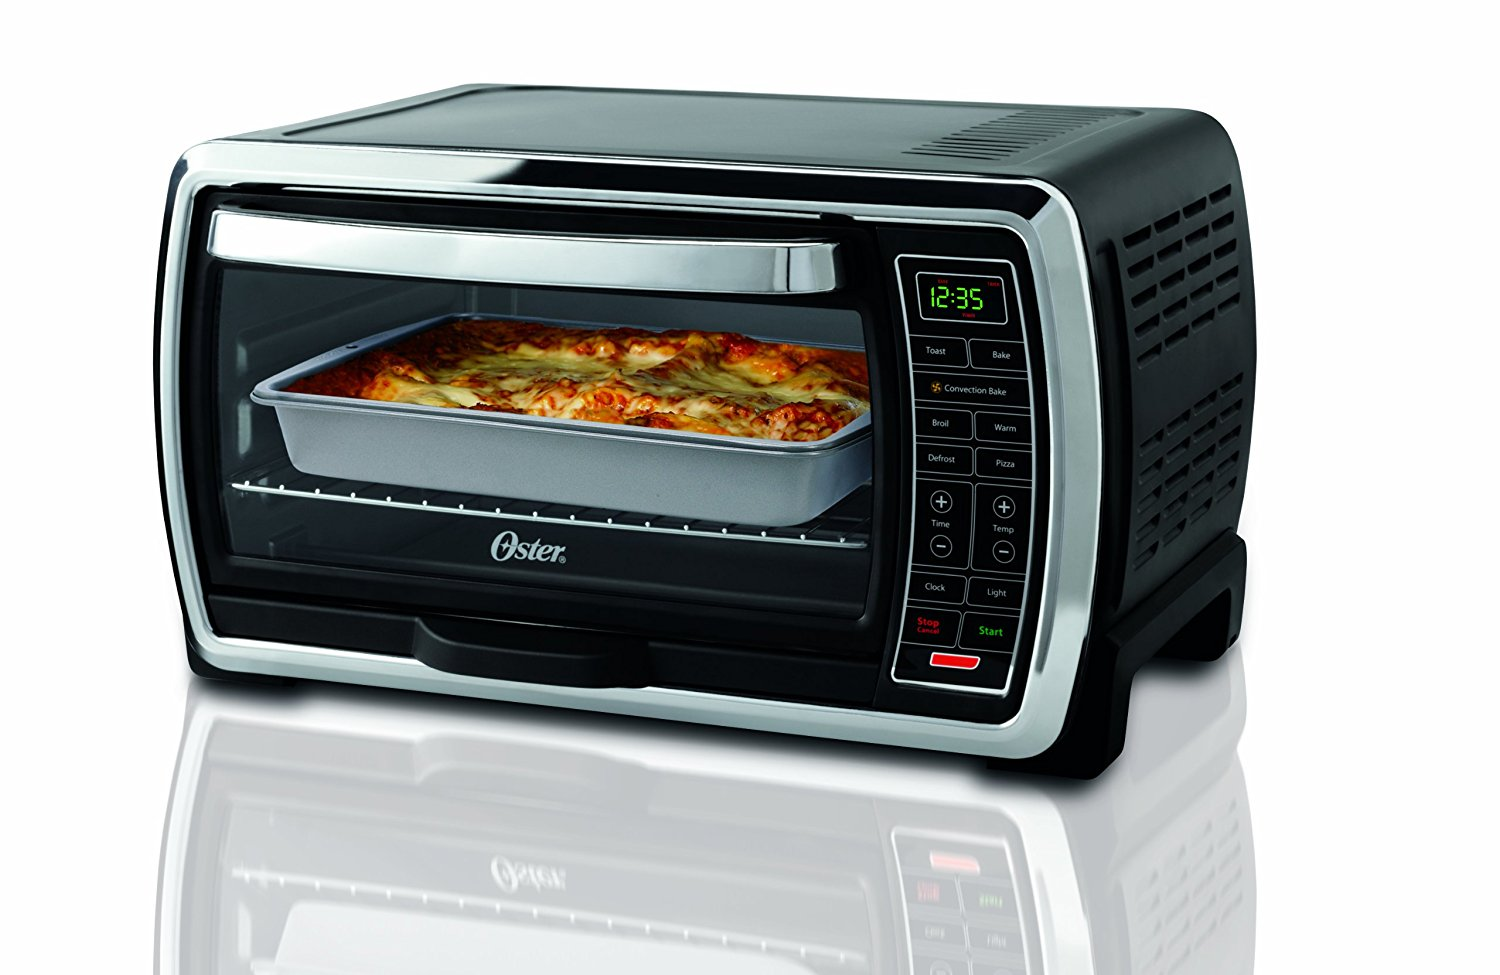 Oster with large capacity countertop 6 Slice digital convection